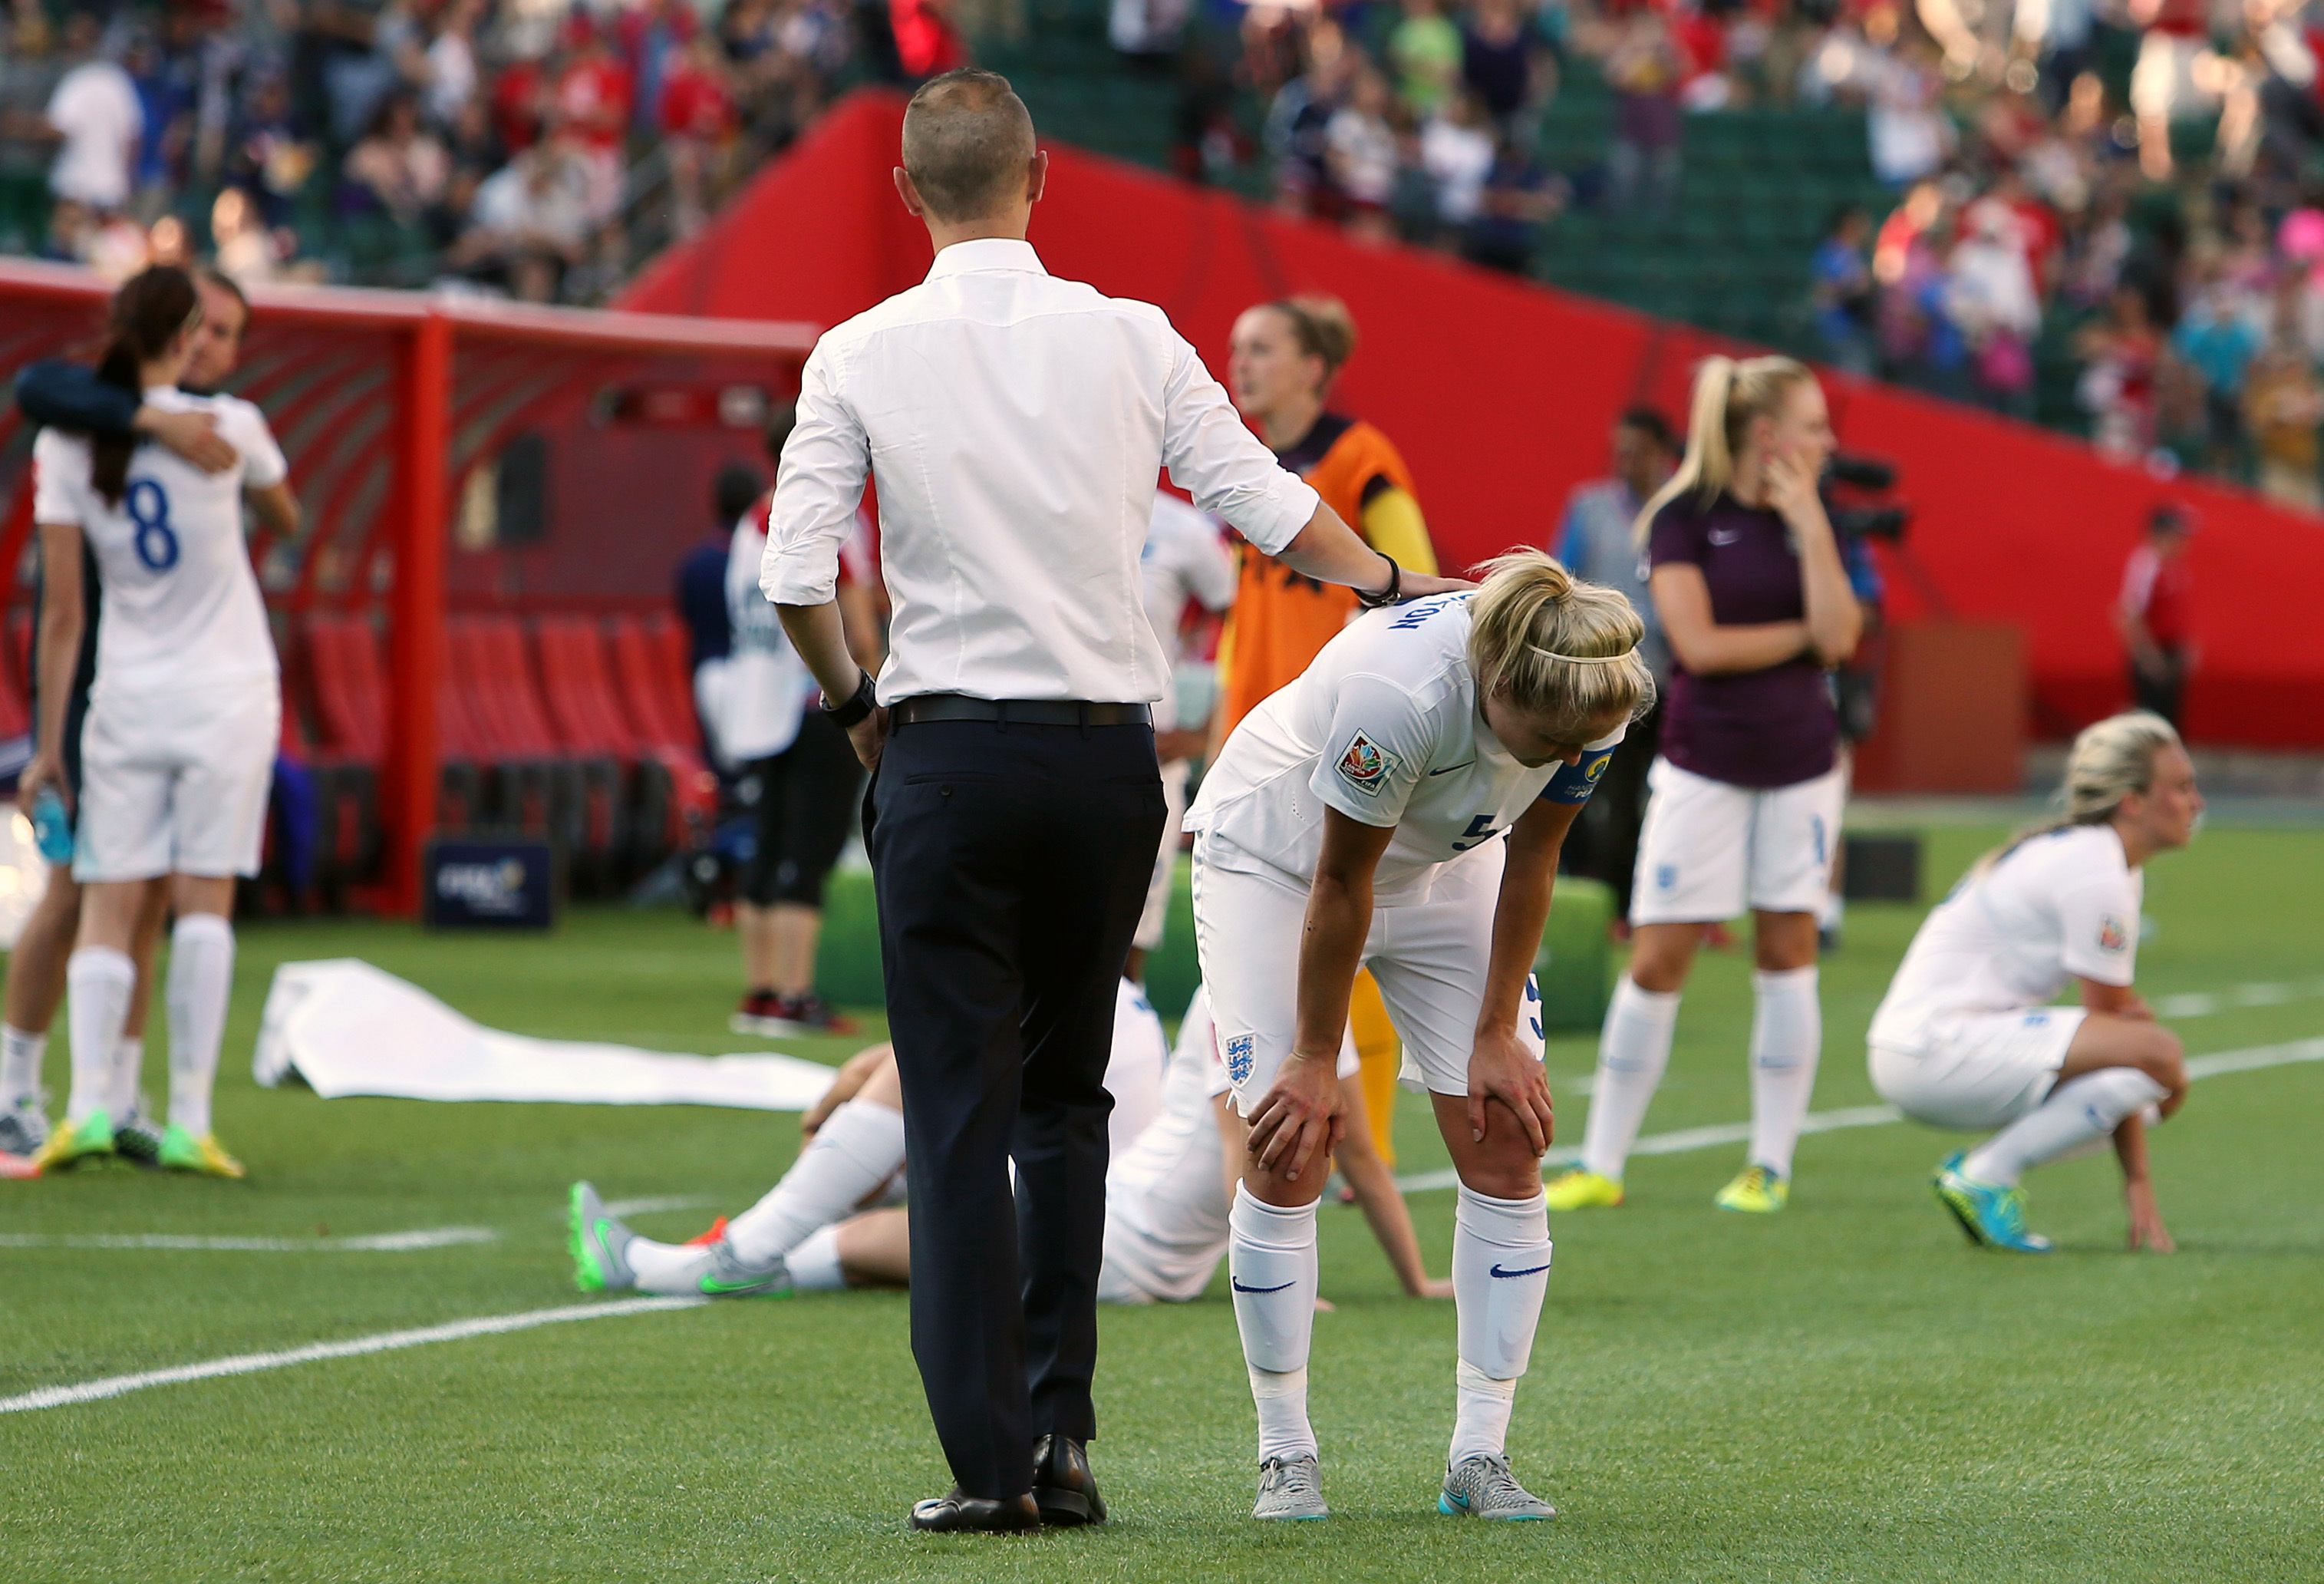 England's head coach Mark Sampson consoles his players after defeat at the 2015 World Cup against Japan